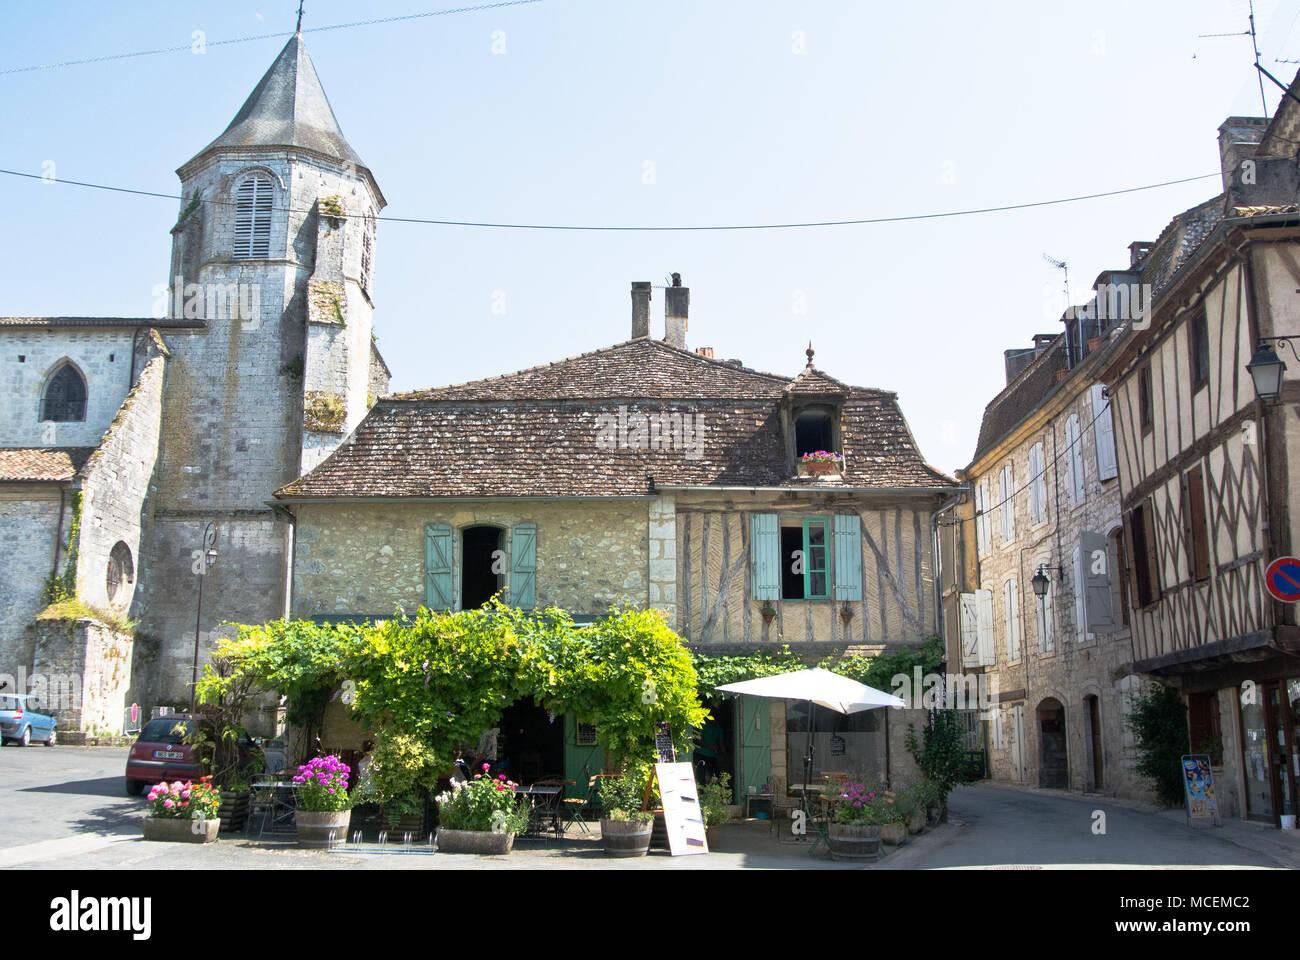 The picturesque town of Issigeac, France - Stock Image